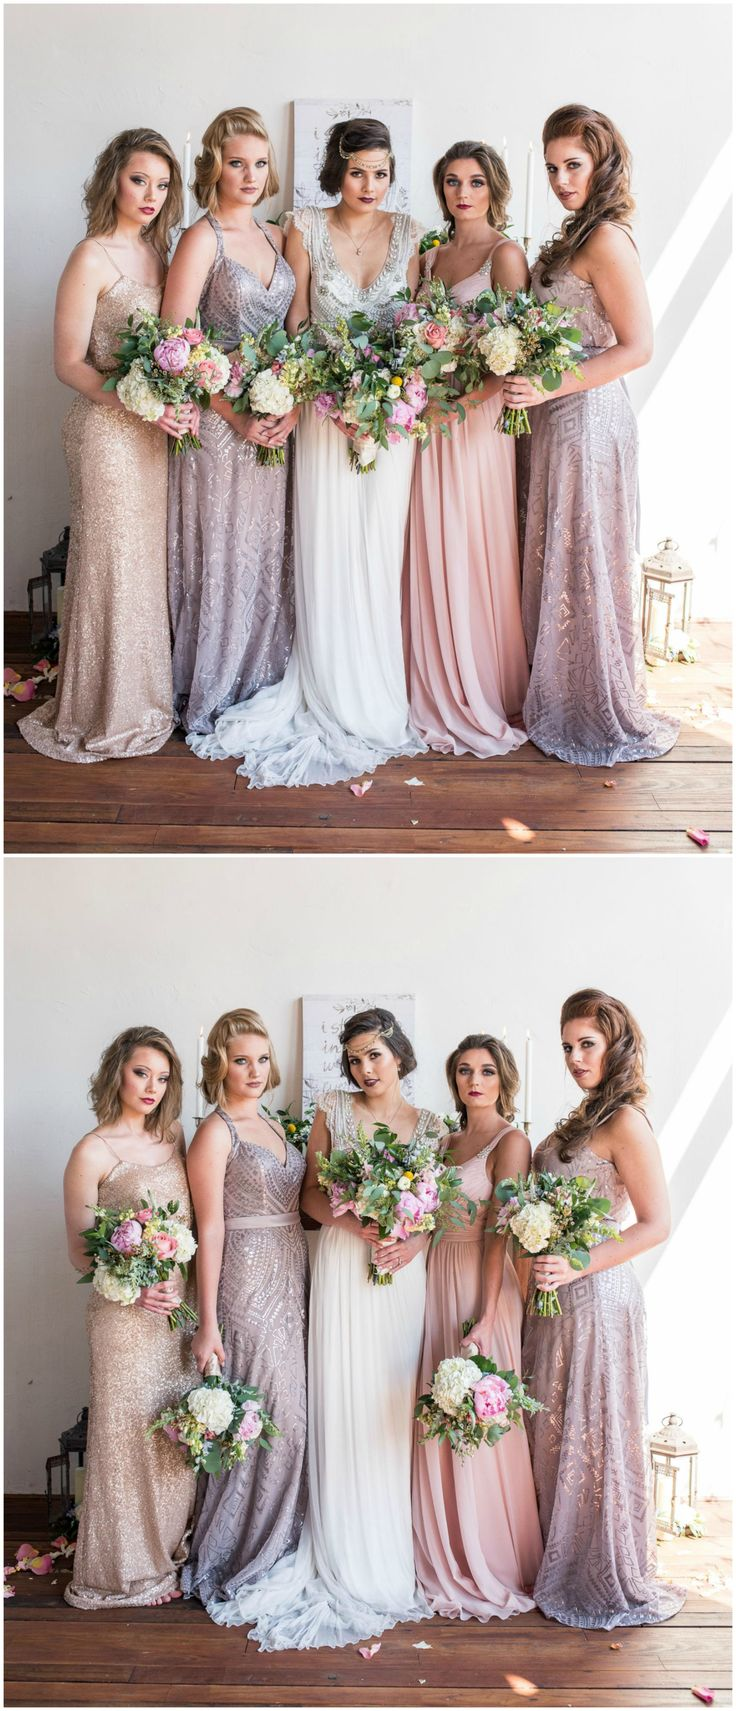 54 best 1920s wedding inspiration images on pinterest 1920s beaded bridesmaid gowns sparkly dresses 1920s inspired gatsby glam wedding fashion ombrellifo Gallery